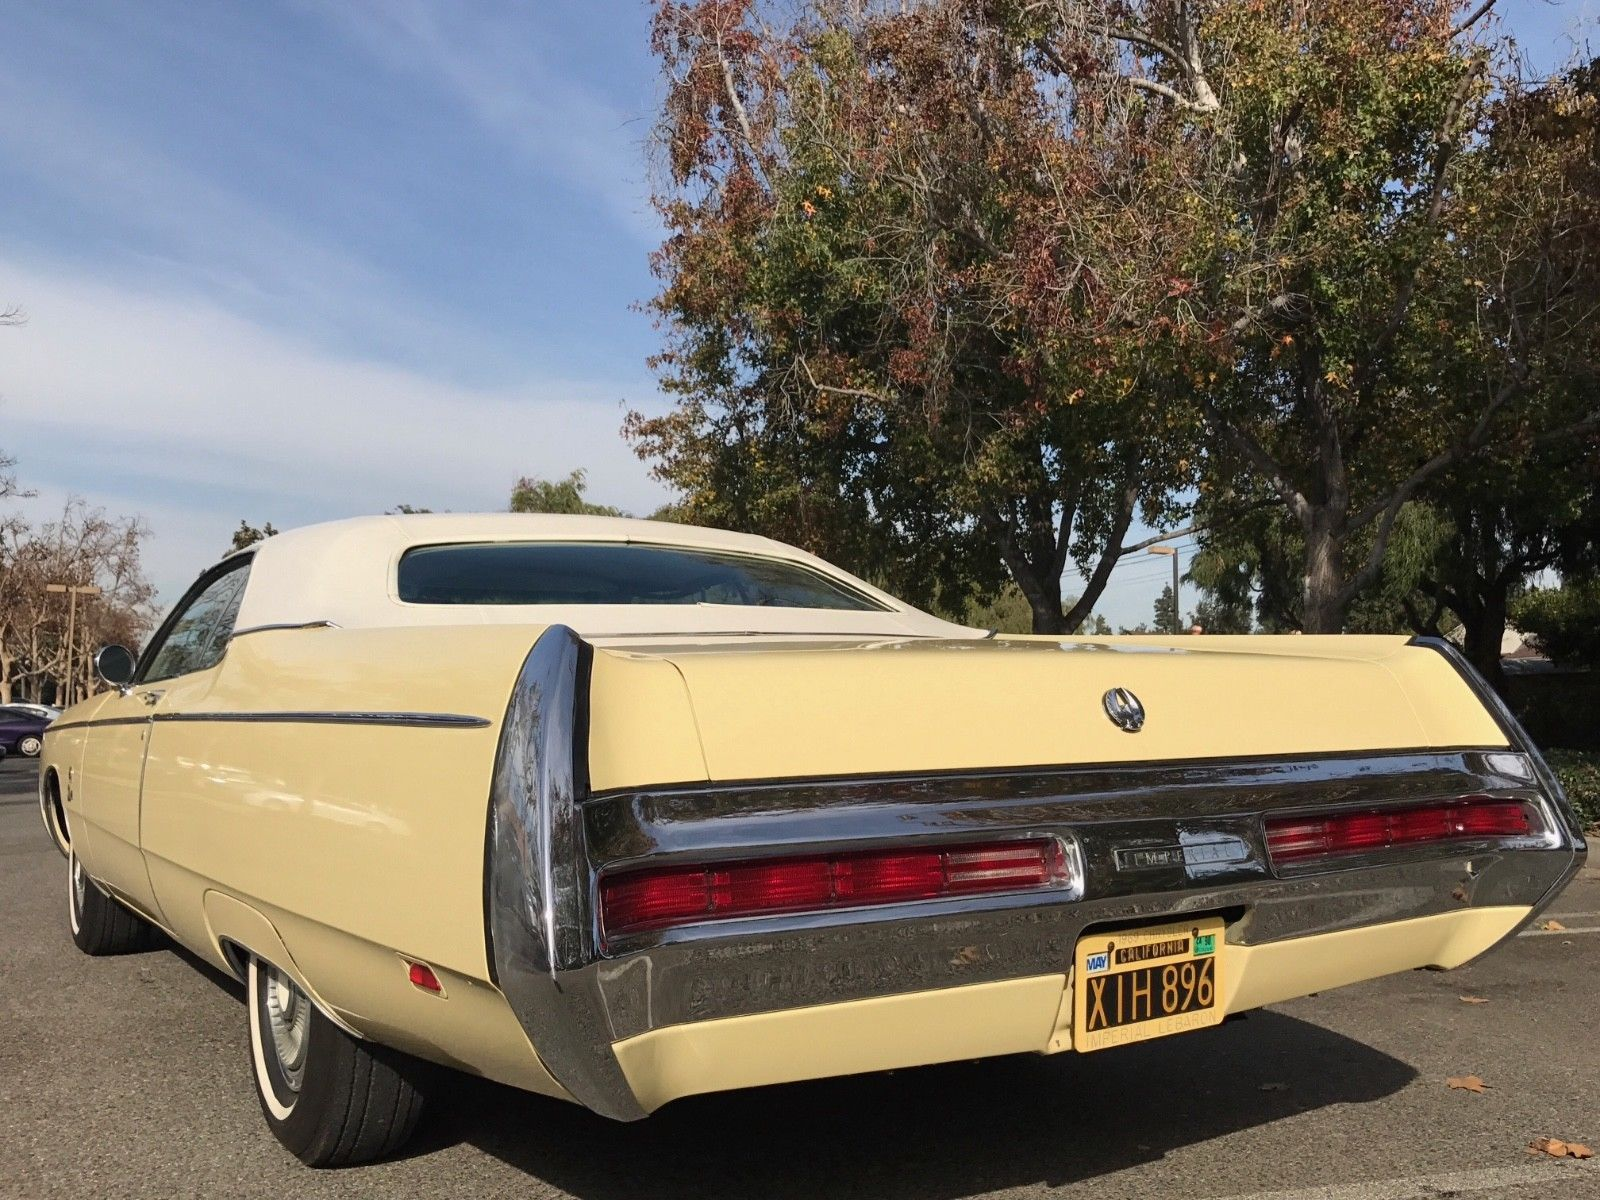 1969 Chrysler Imperial Ebay Chrysler Imperial Chrysler Imperial